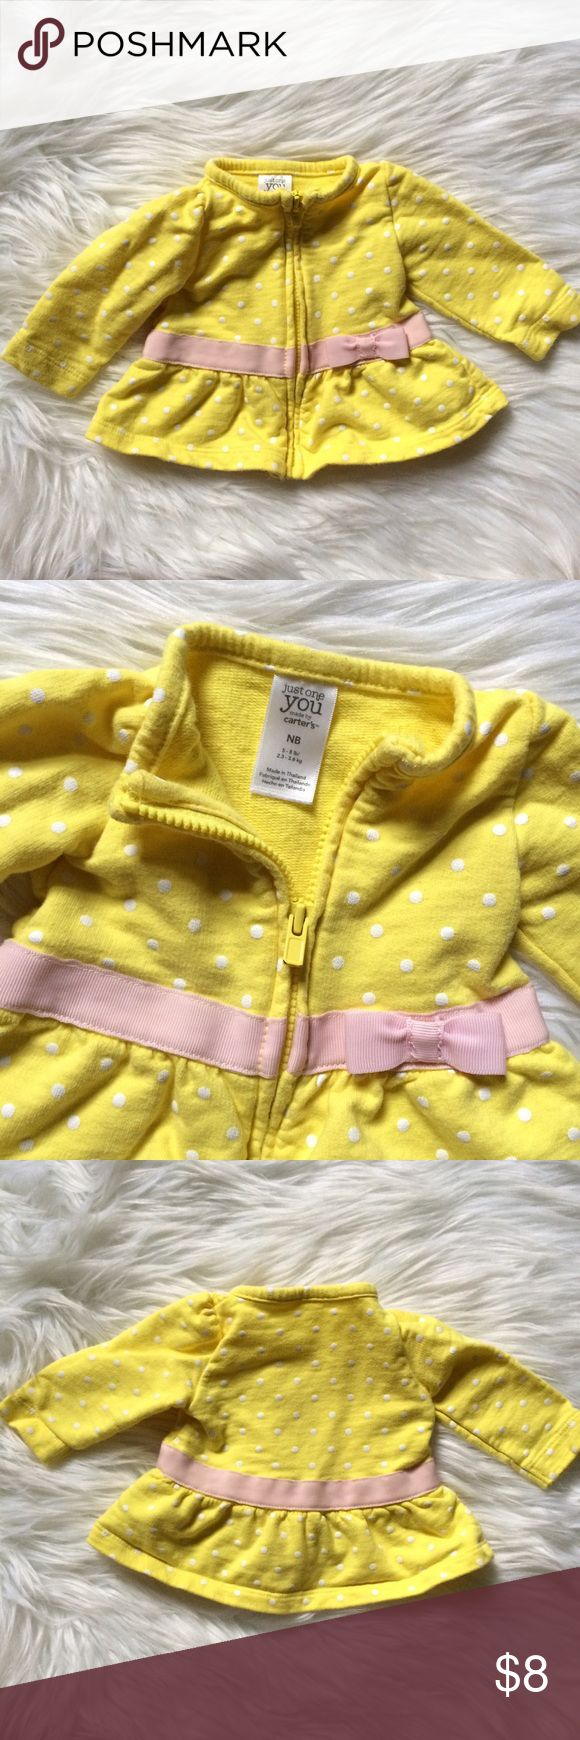 Carter's Yellow polka dot Peplum Zip Up Jacket NB Carter's Yellow polka dot Peplum Zip Up lightweight knit Jacket NB. In excellent pre-owned condition!  🙈Bundle your likes to receive a special discount! 🙉Bundle with @designhive (women's) 🙊Offers Welcome! Check out my Summer Clearance Sale--50% off 4+ Summer bundles! Carter's Jackets & Coats